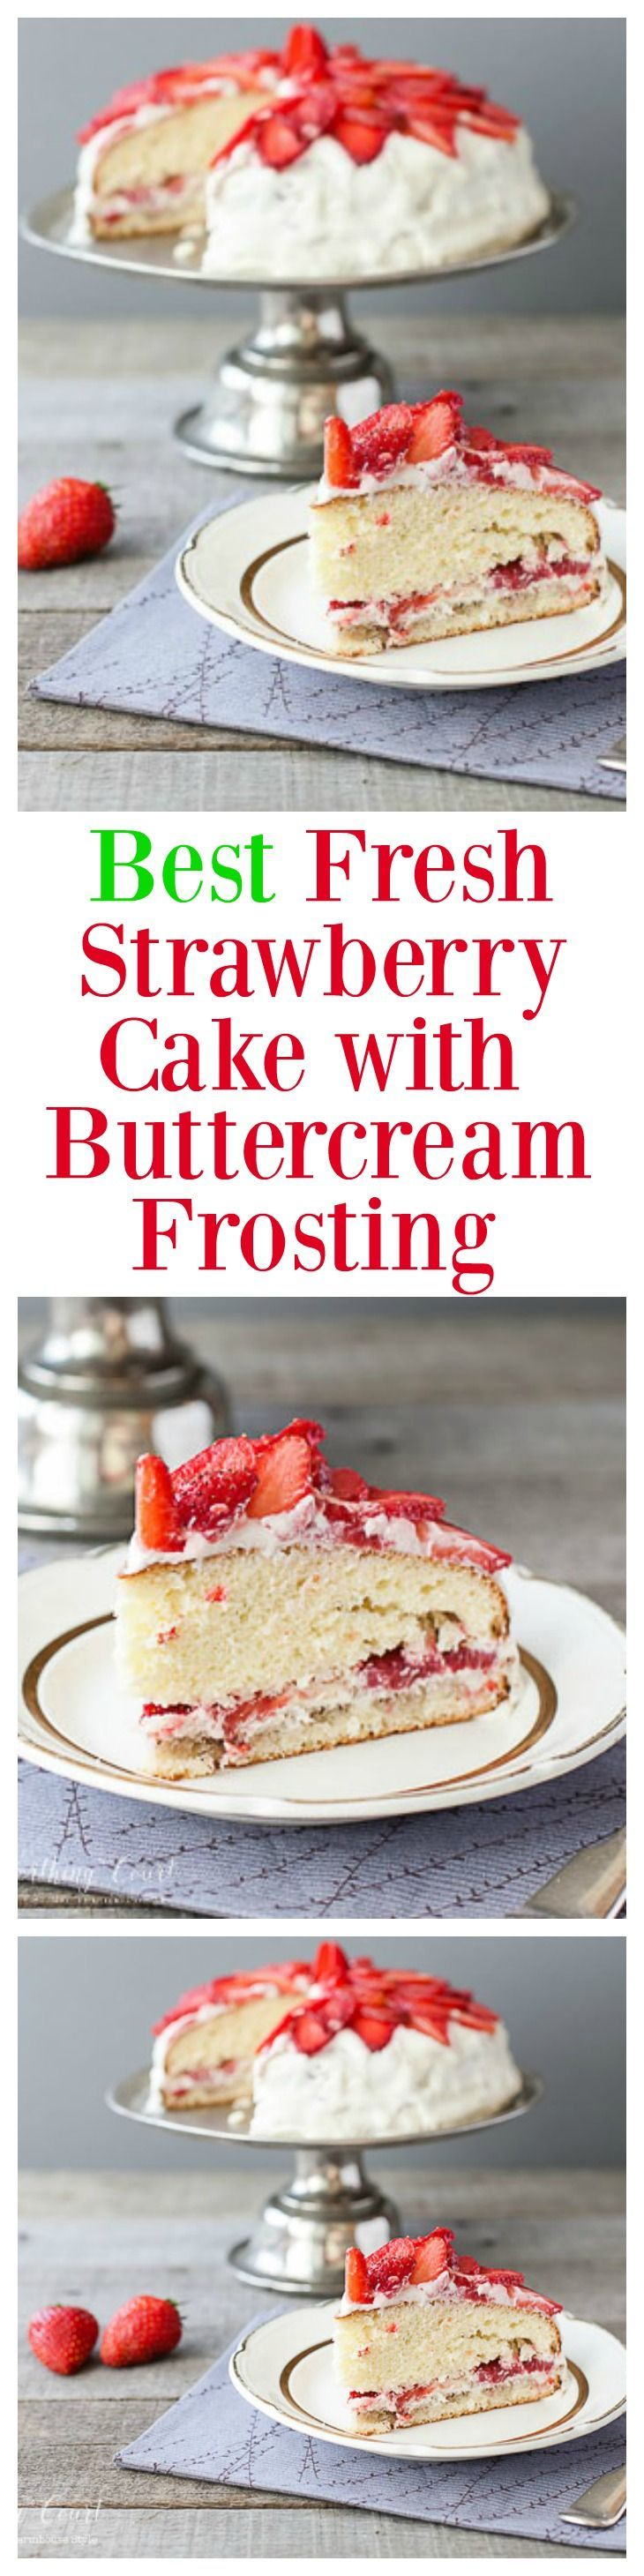 This strawberry cake recipe is one of my favorite ways to enjoy fresh strawberries. It's easy to put together because it starts out with white cake mix and strawberry gelatin. Only a few more ingredients are needed. It has the best strawberry flavor and is wonderfully moist. The only thing that makes the cake better is the buttercream frosting!